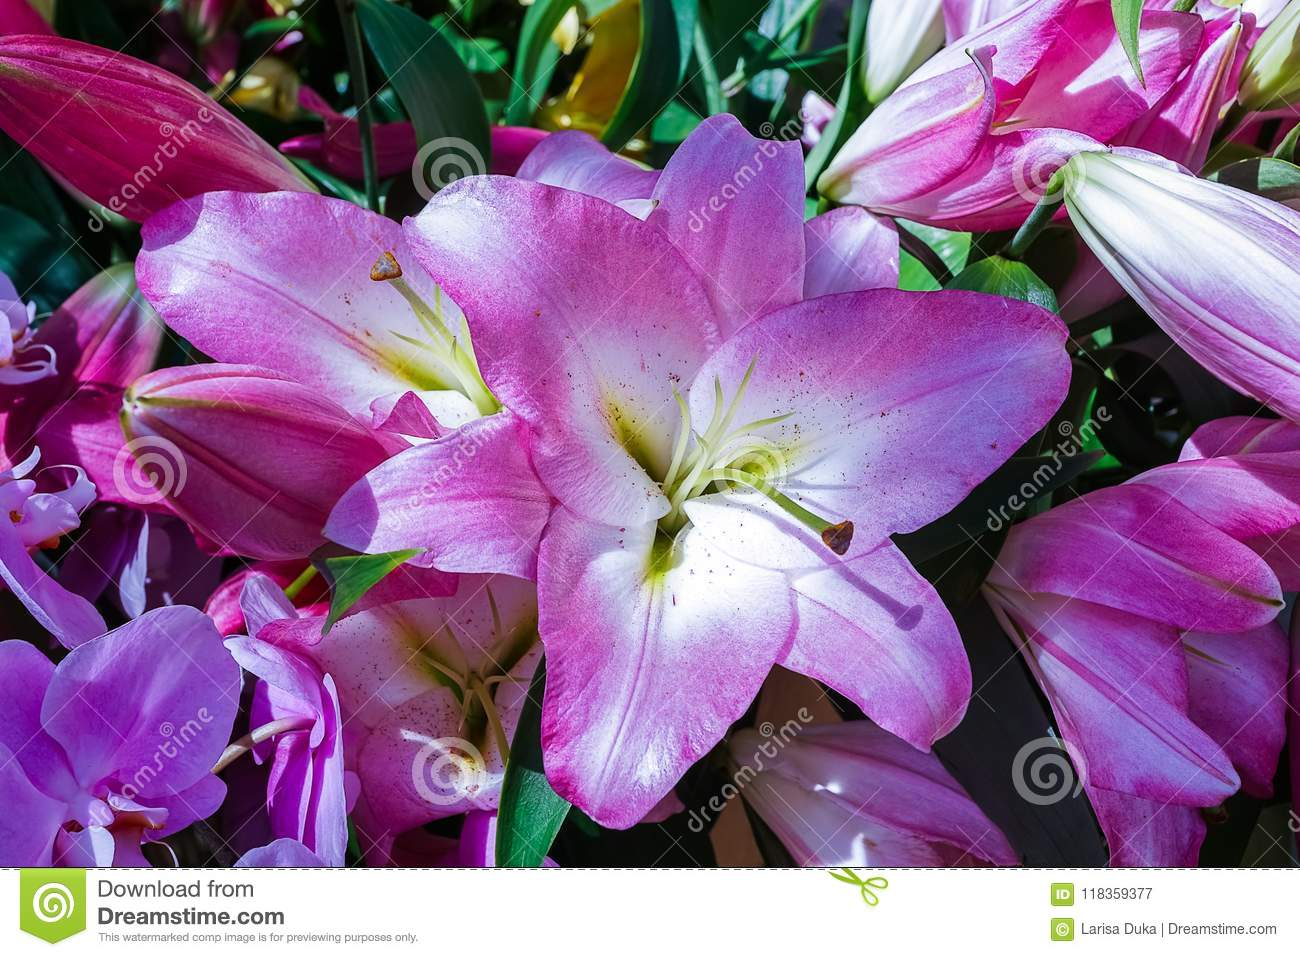 Purple lily flowers under natural light stock image image of purple lily flowers under natural light izmirmasajfo